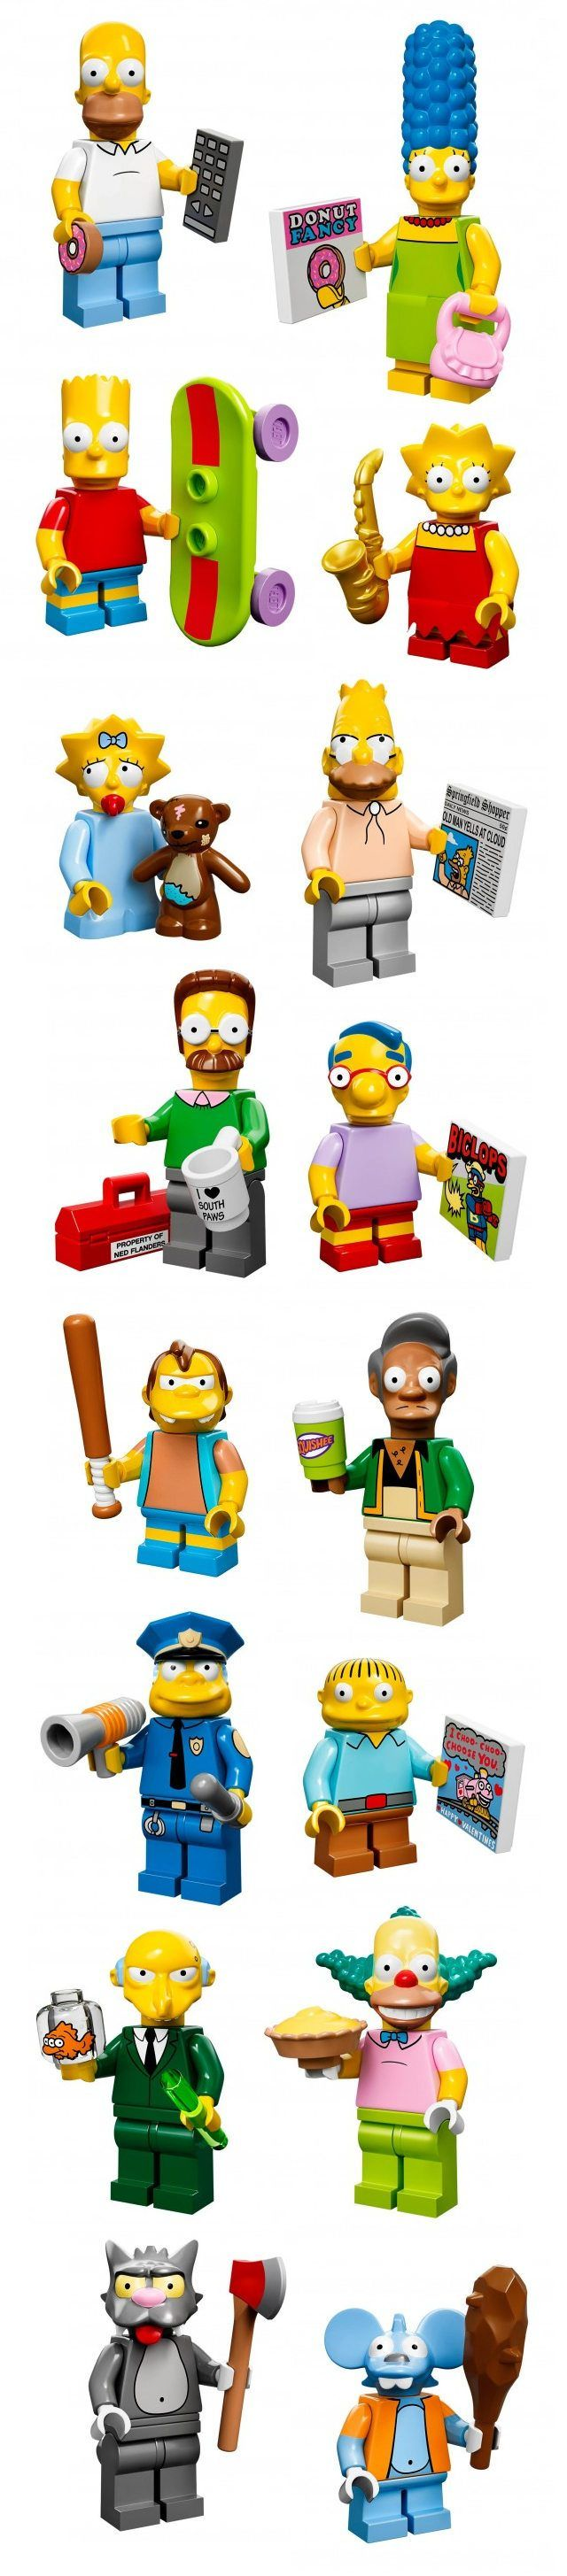 Figurines Lego série 13 : les Simpsons